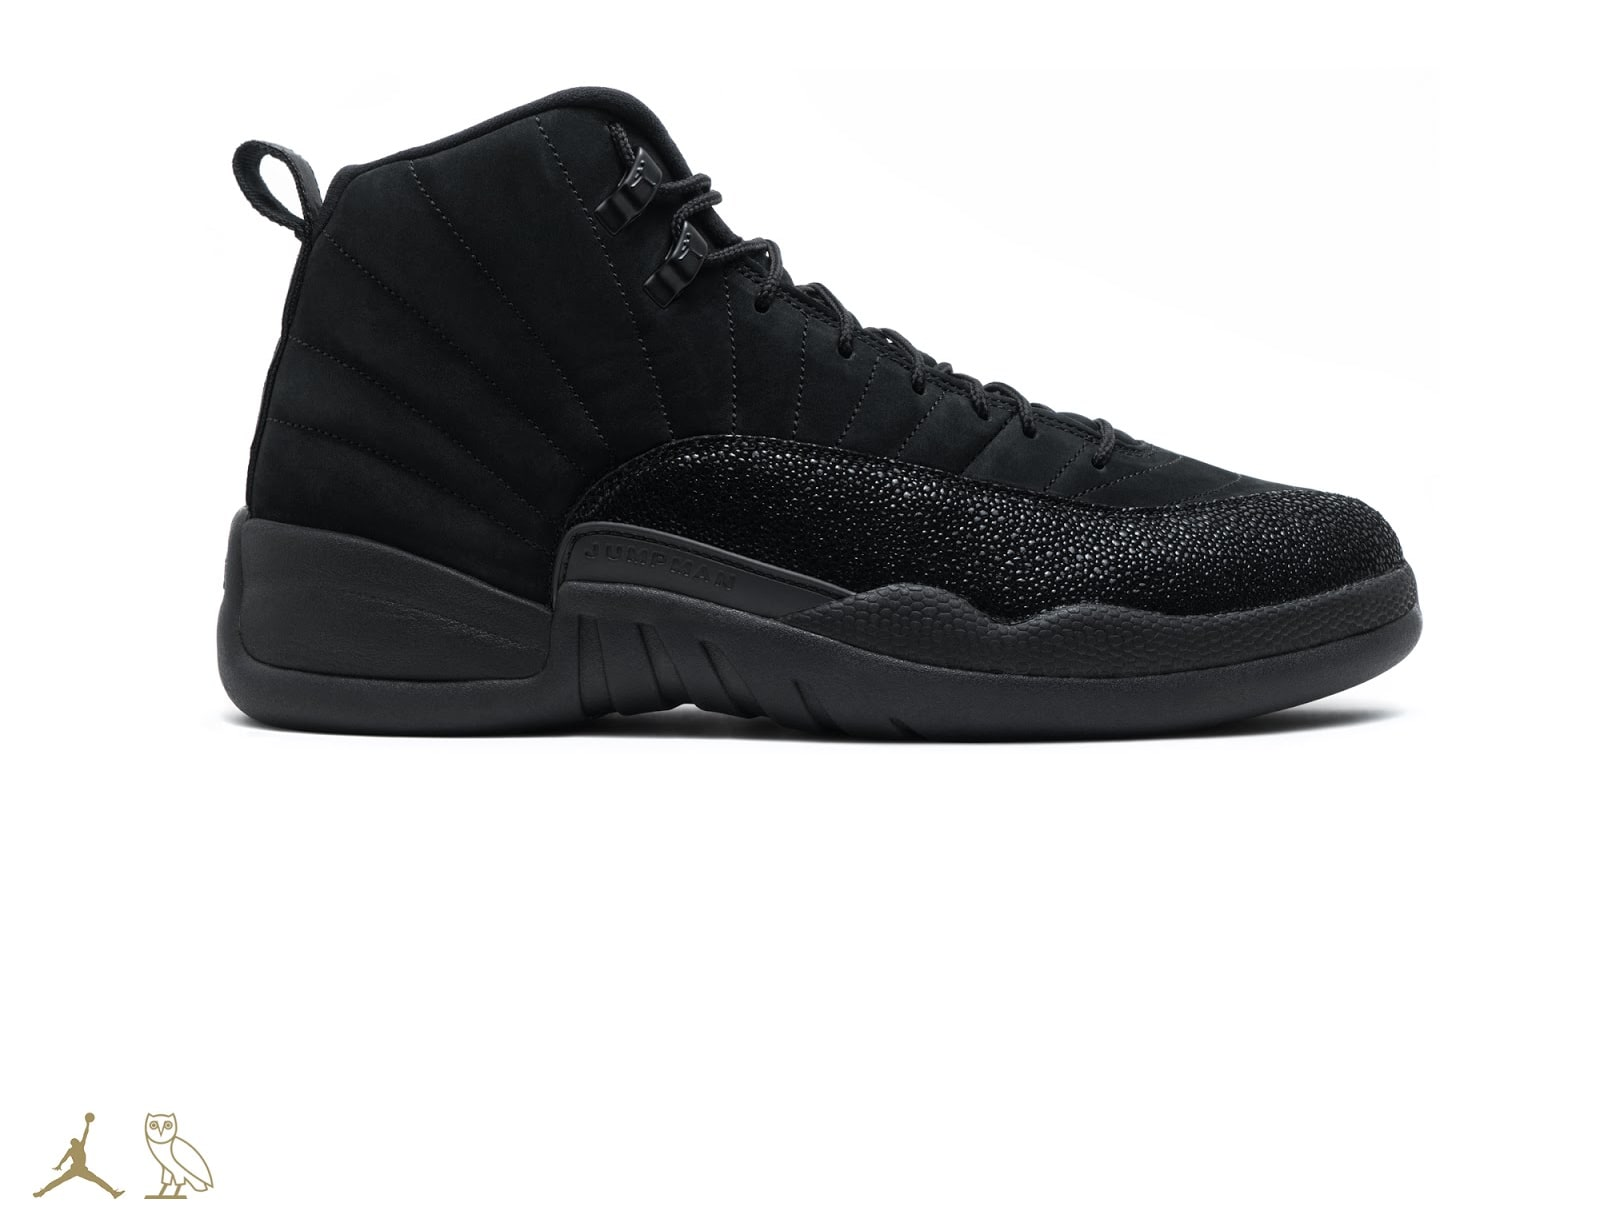 801977a9ce6c7 air jordan retro 12 amazon